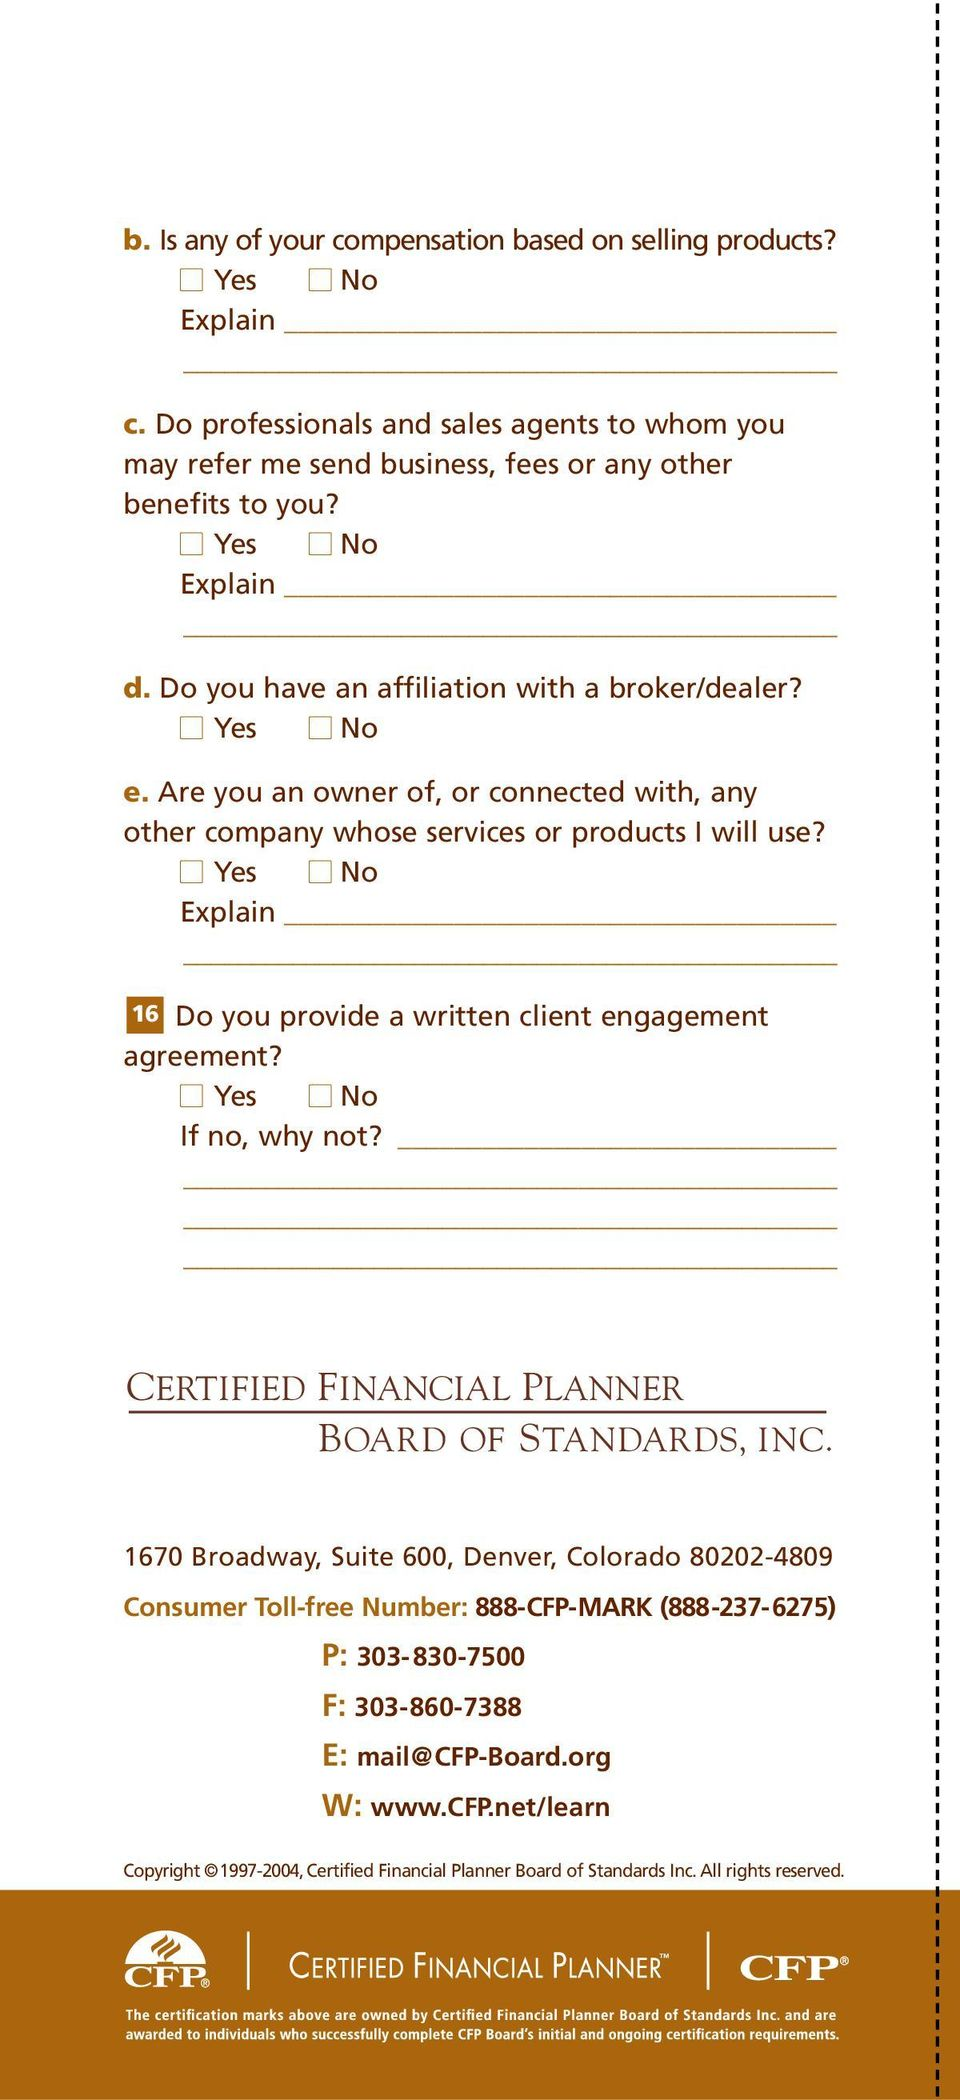 Explain 16 Do you provide a written client engagement agreement? If no, why not? CERTIFIED FINANCIAL PLANNER BOARD OF STANDARDS, INC.